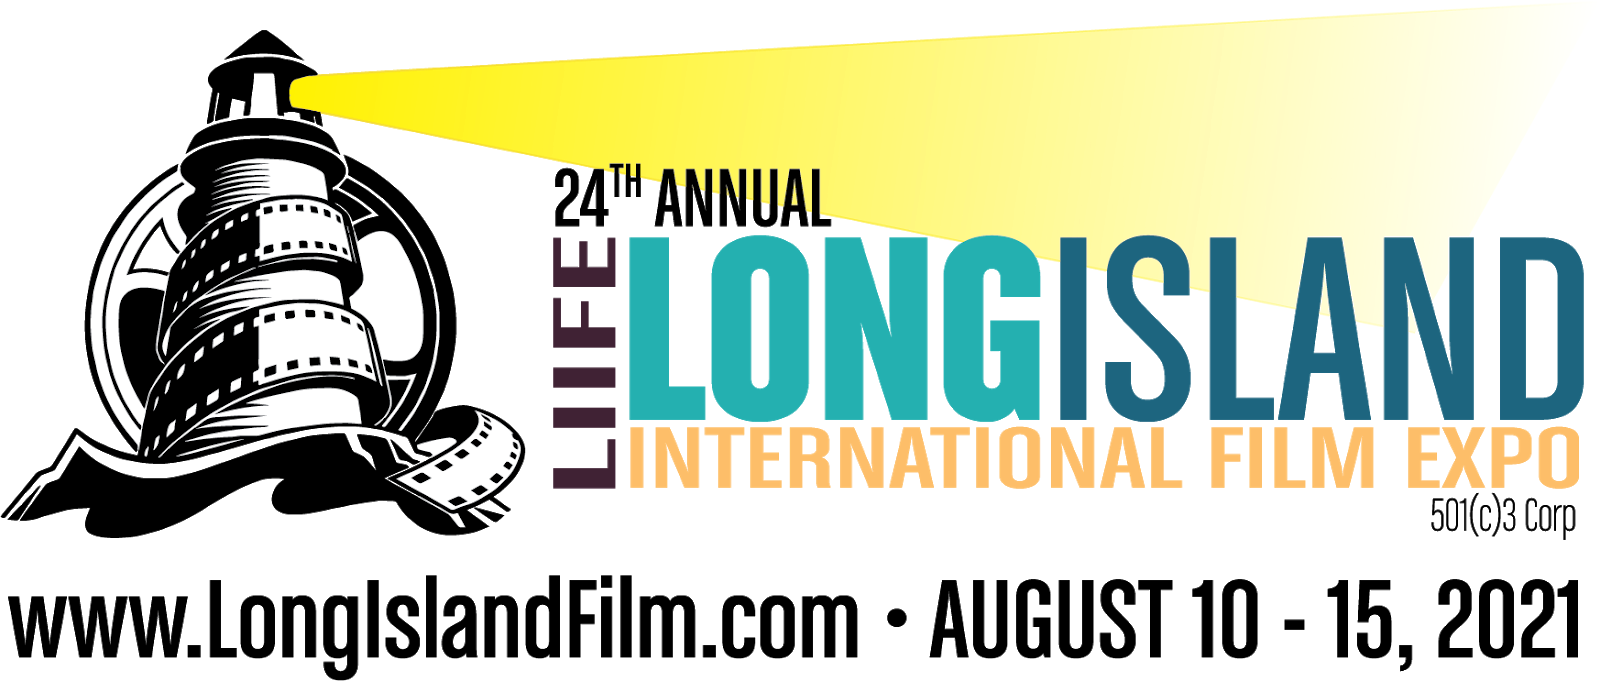 The 24th Annual Long Island International Film Expo is August 10th - 15th